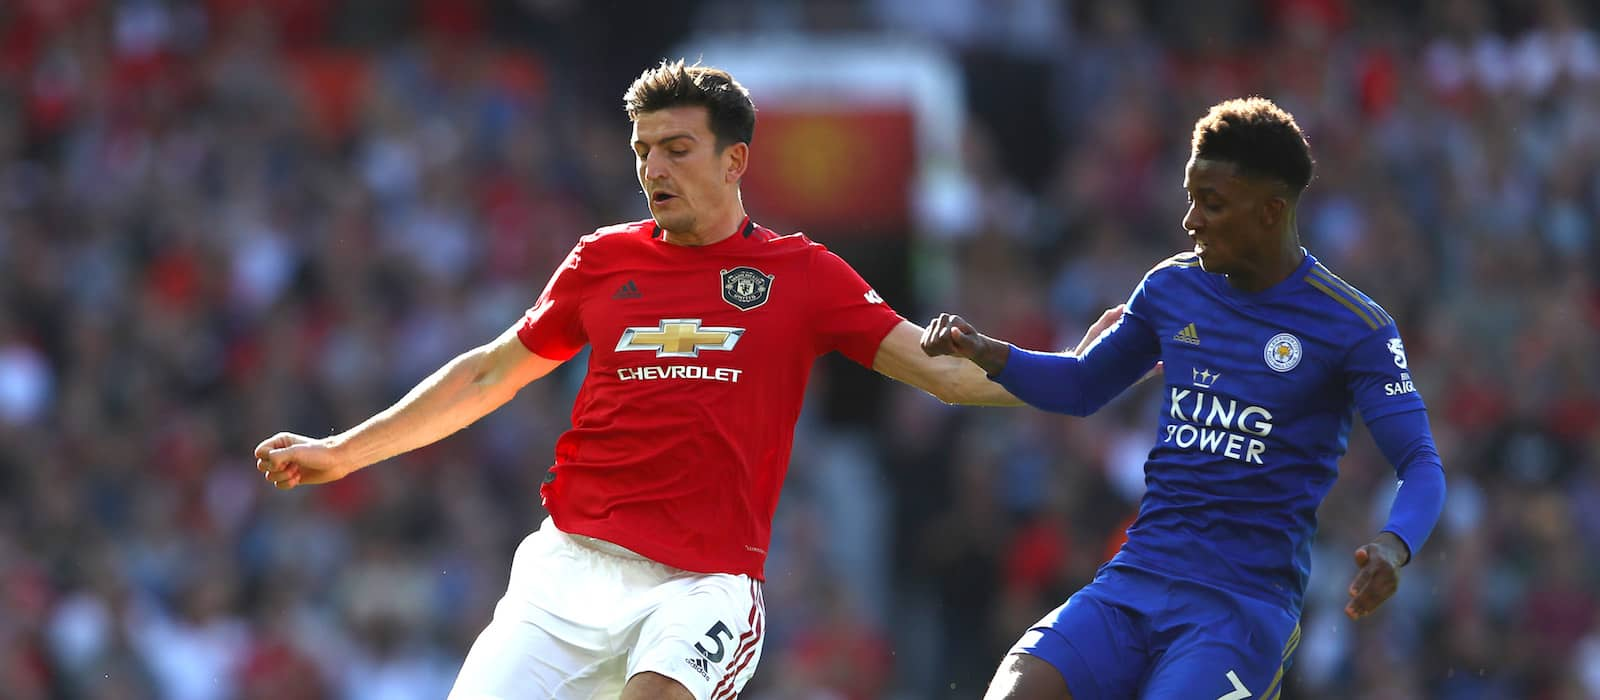 Harry Maguire insists he'll prove worth to Manchester United over time